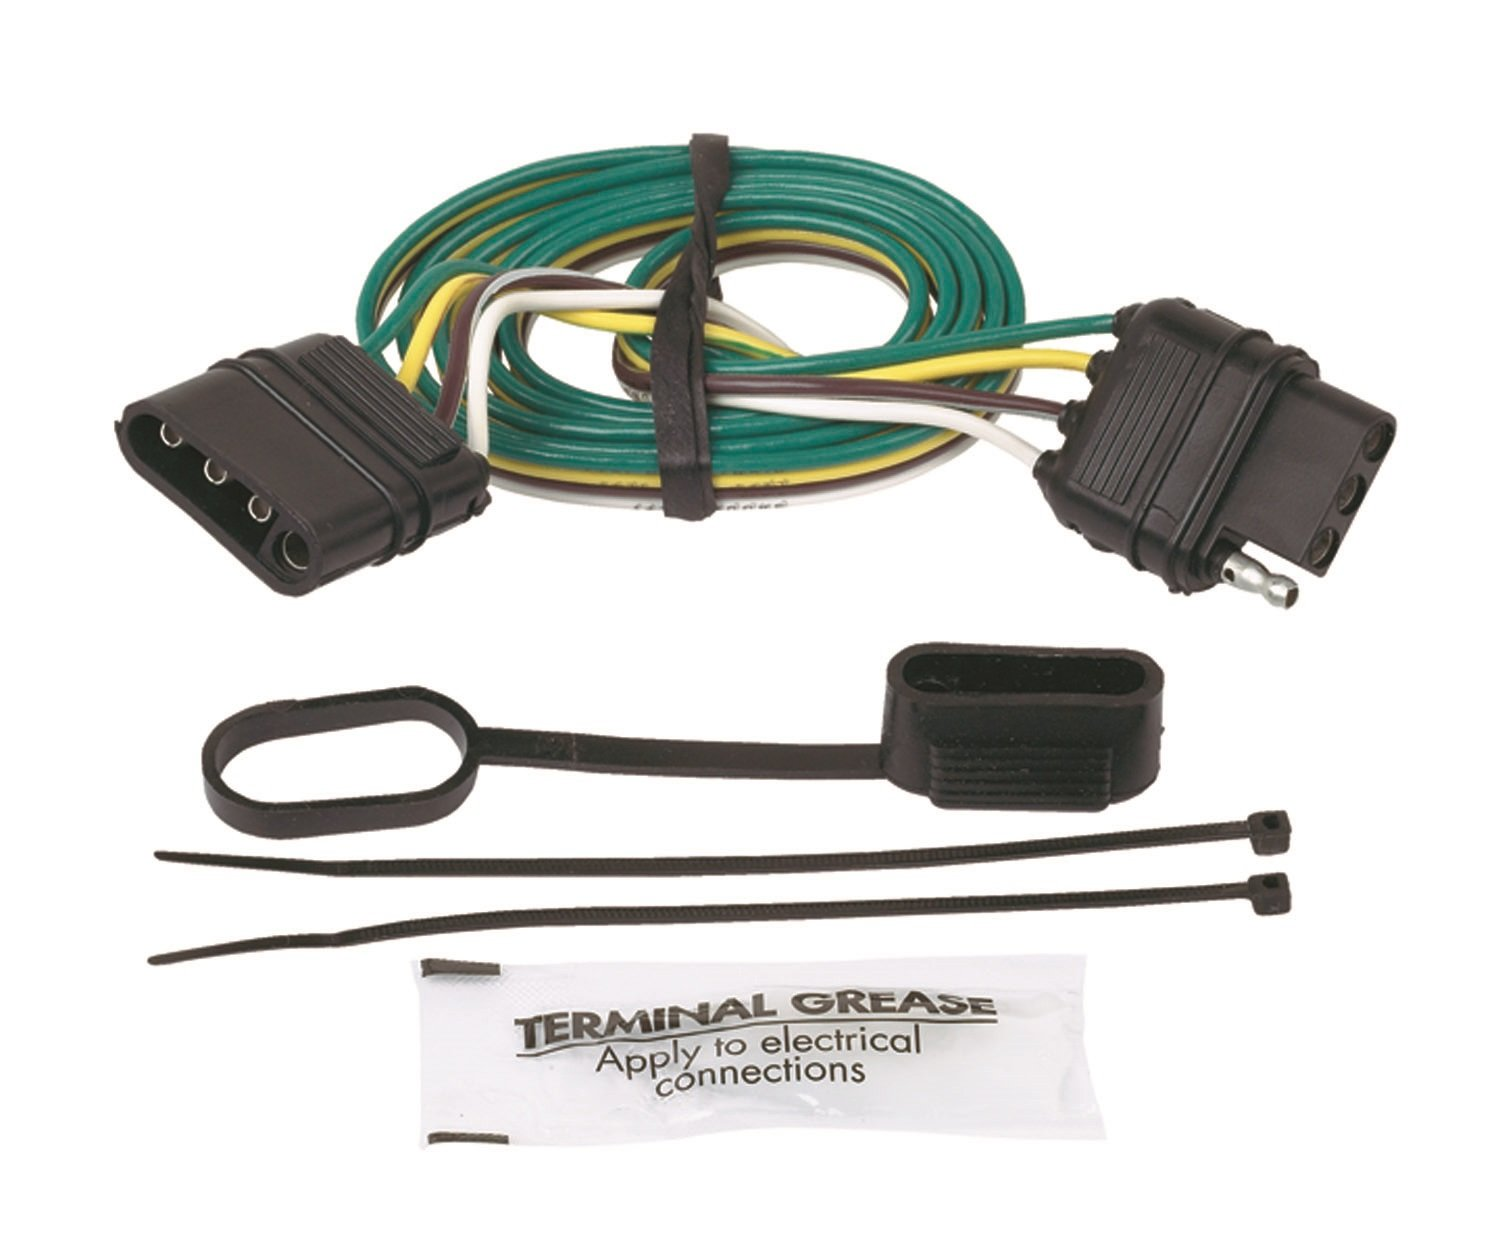 Hopkins 47115 4 Wire Flat Extension 48 Length Automotive 8487curtwiringtconnectorstrailerwireconnectorjpg